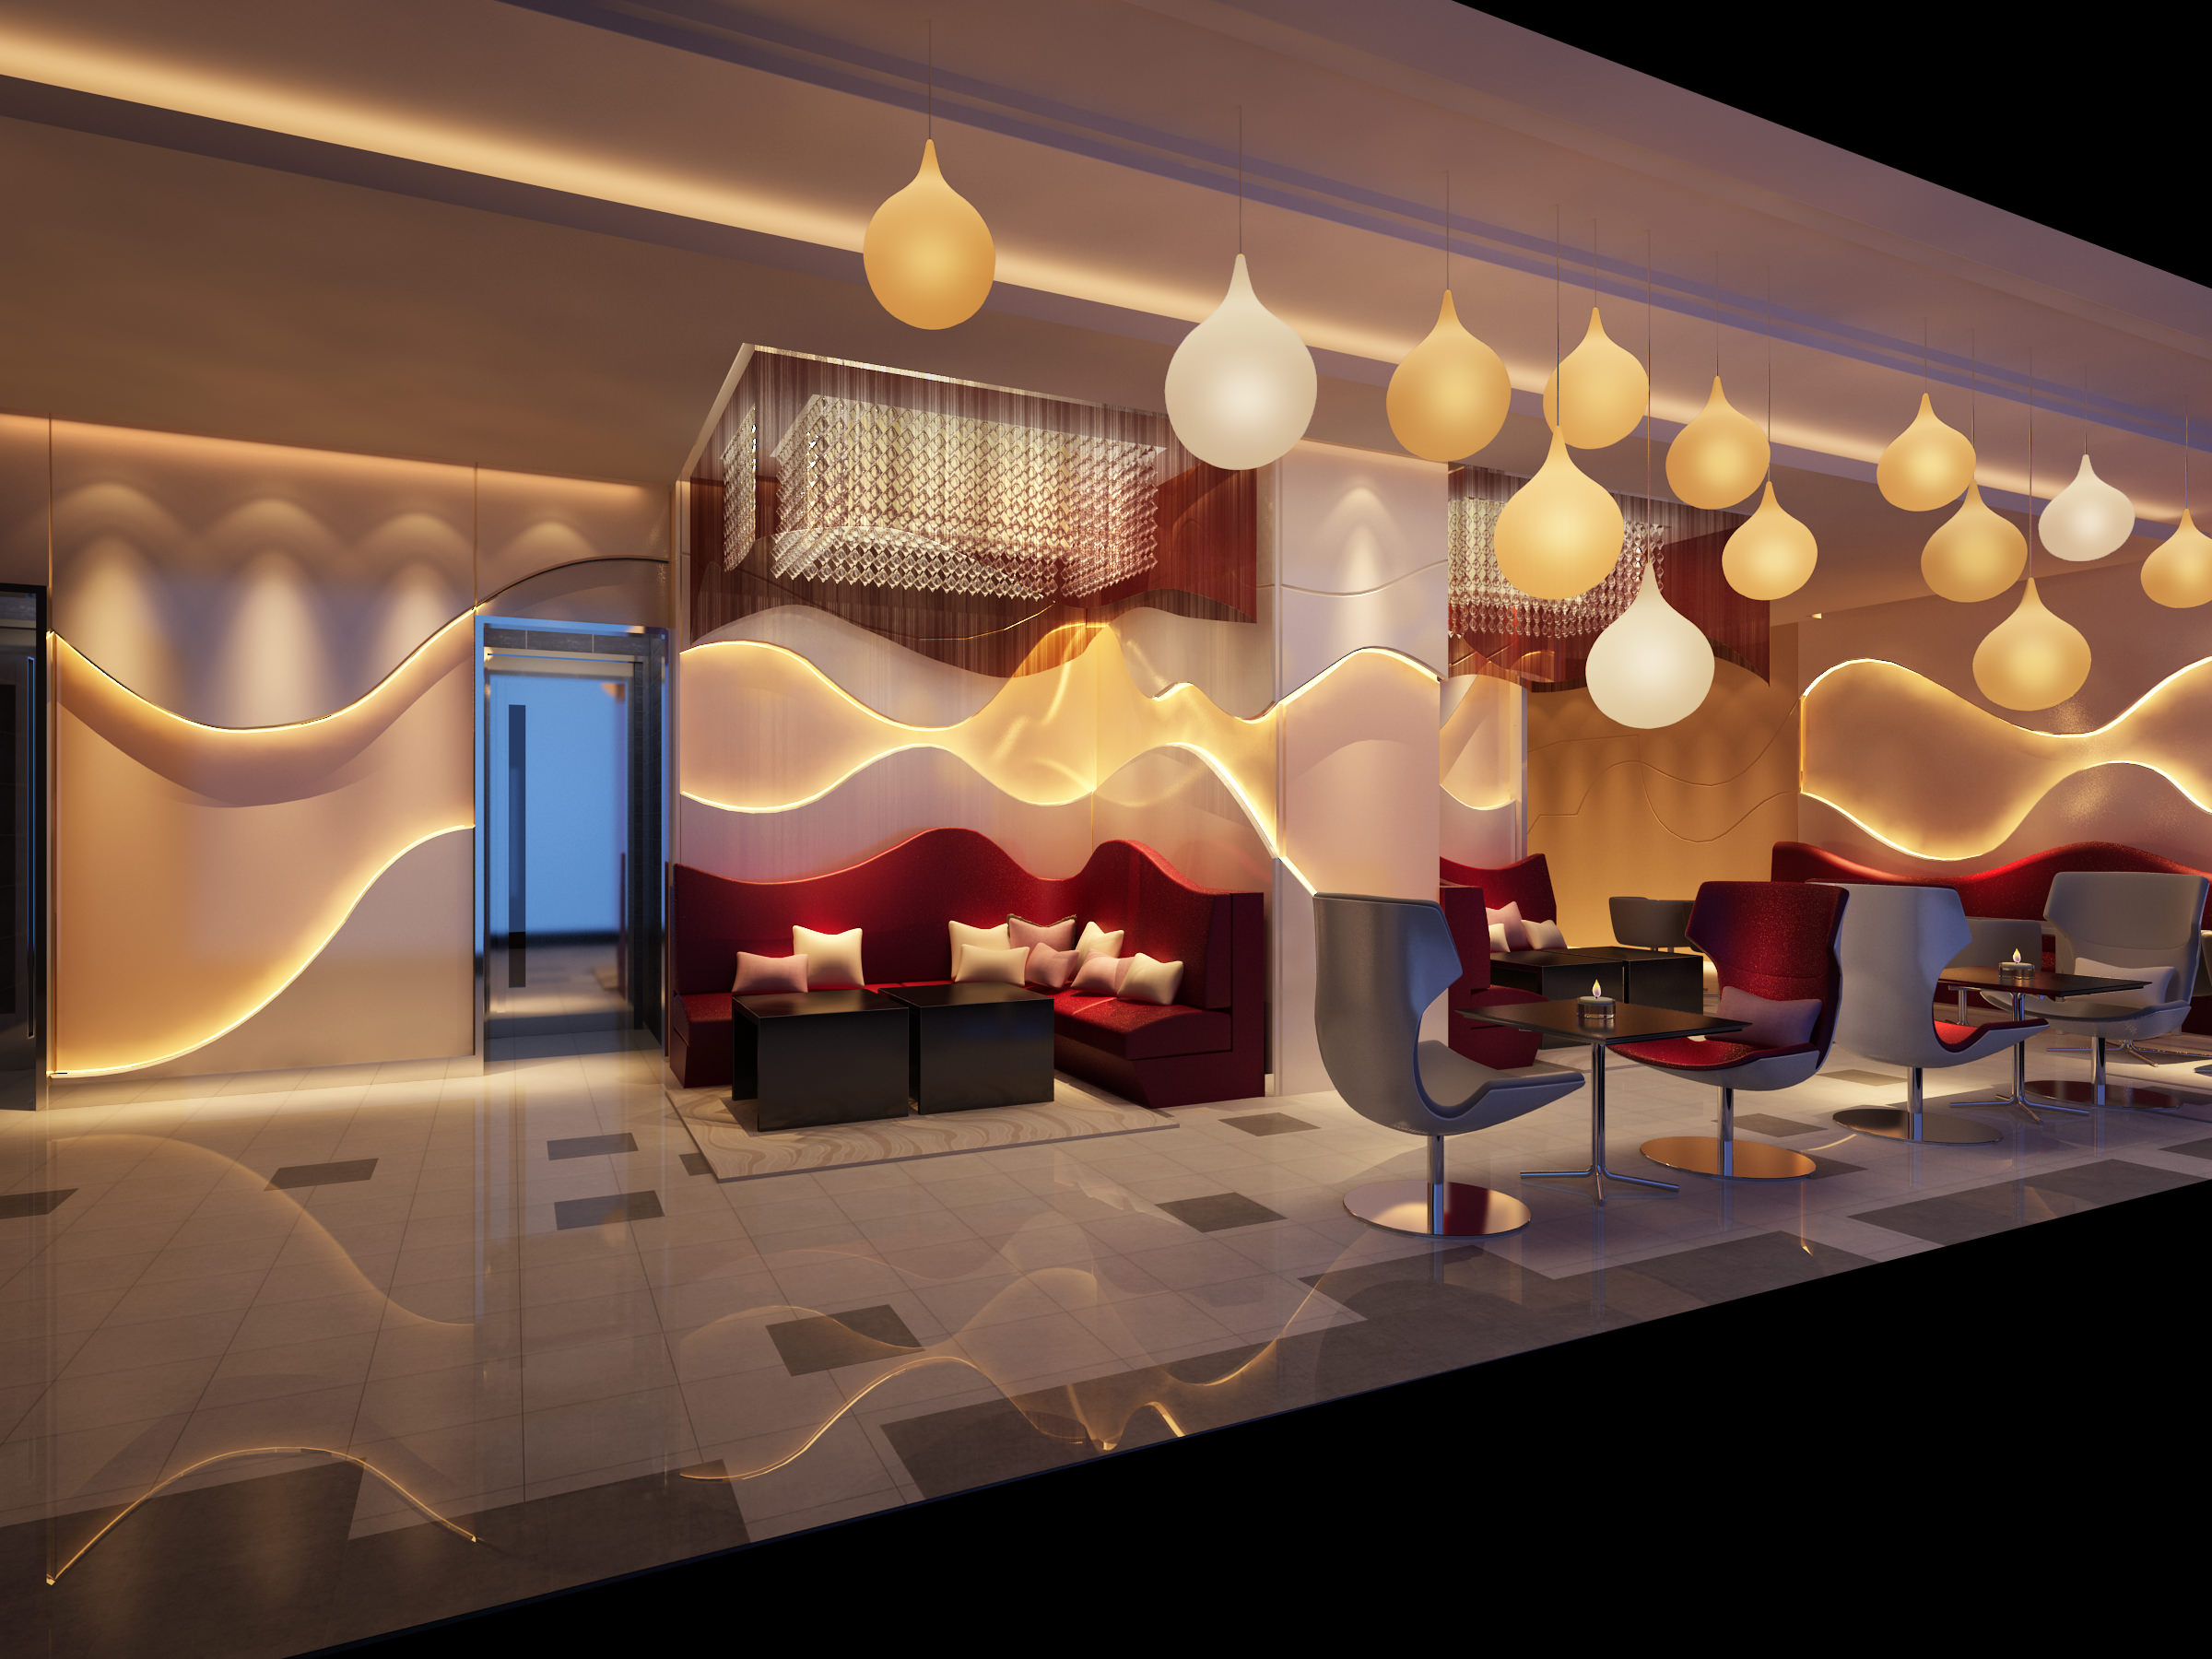 Ritzy Cafe Interior 3d Model Max 1